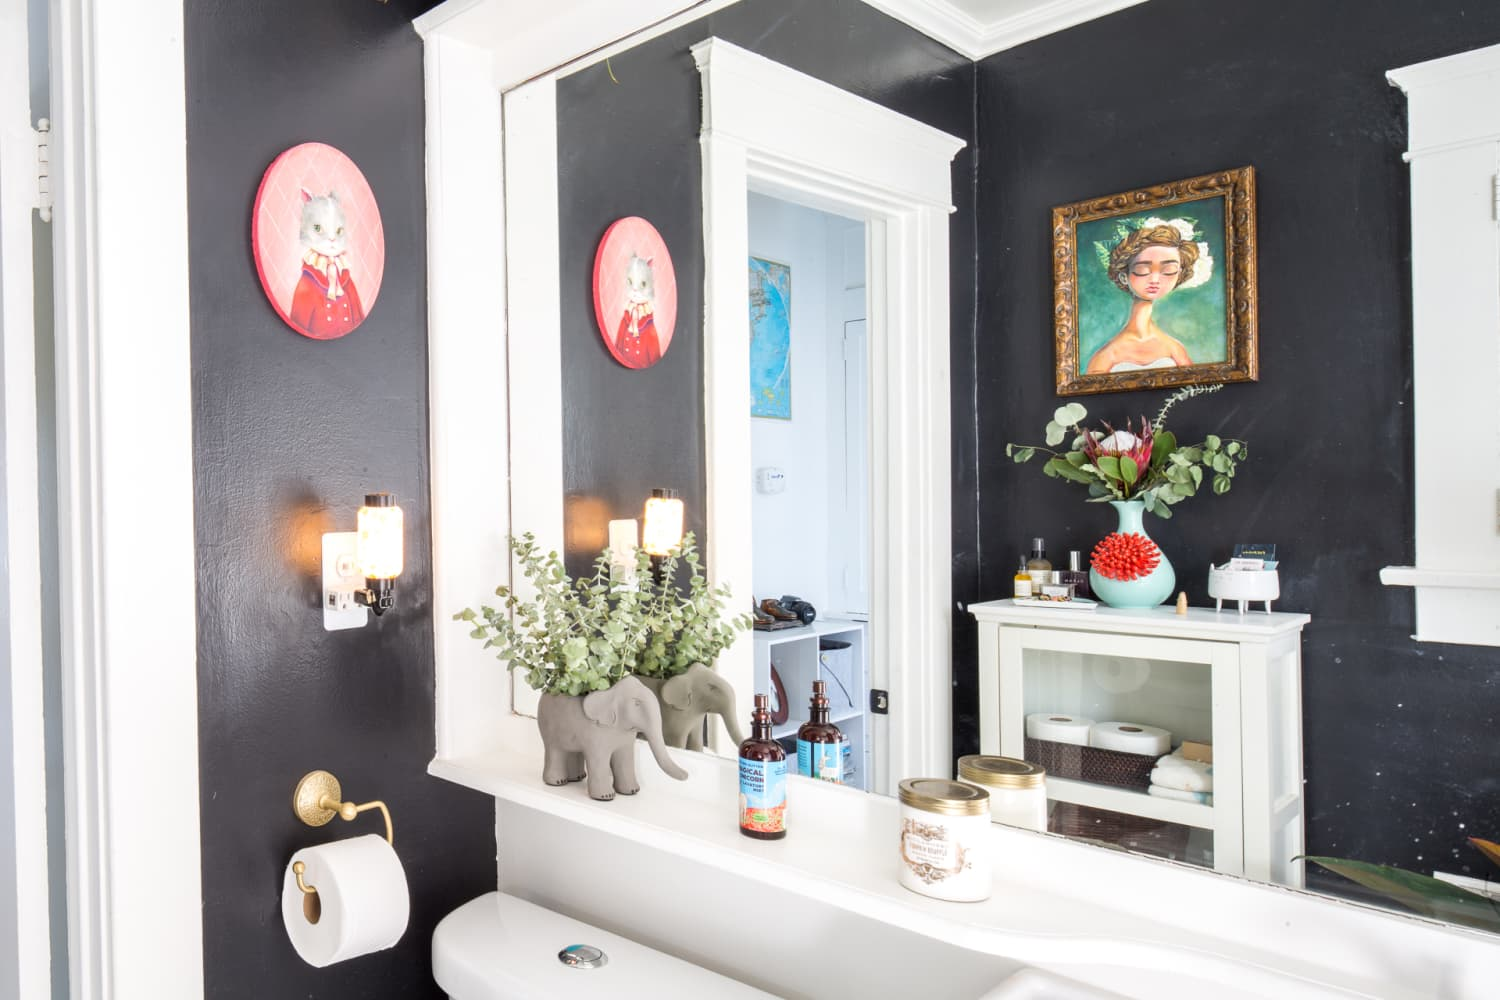 10 Brilliant Bathroom Storage Solutions You Can Buy for Under $50